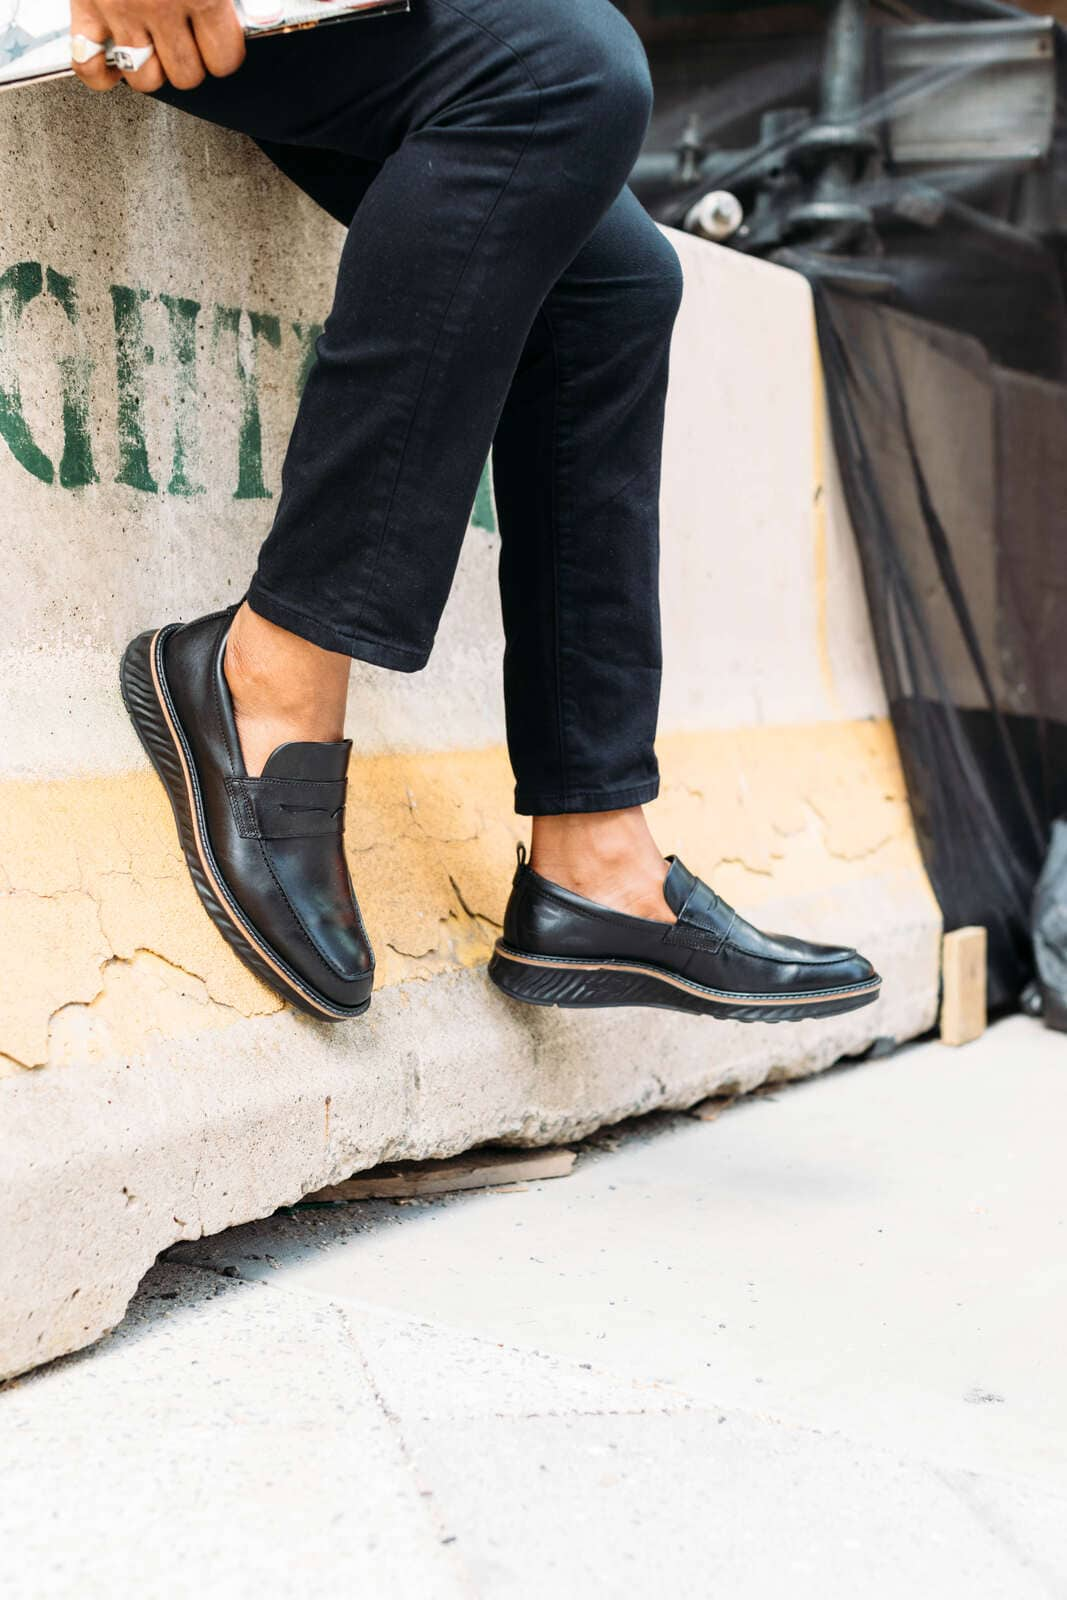 HYBRID ST. 1 Penny Loafer by ECCO